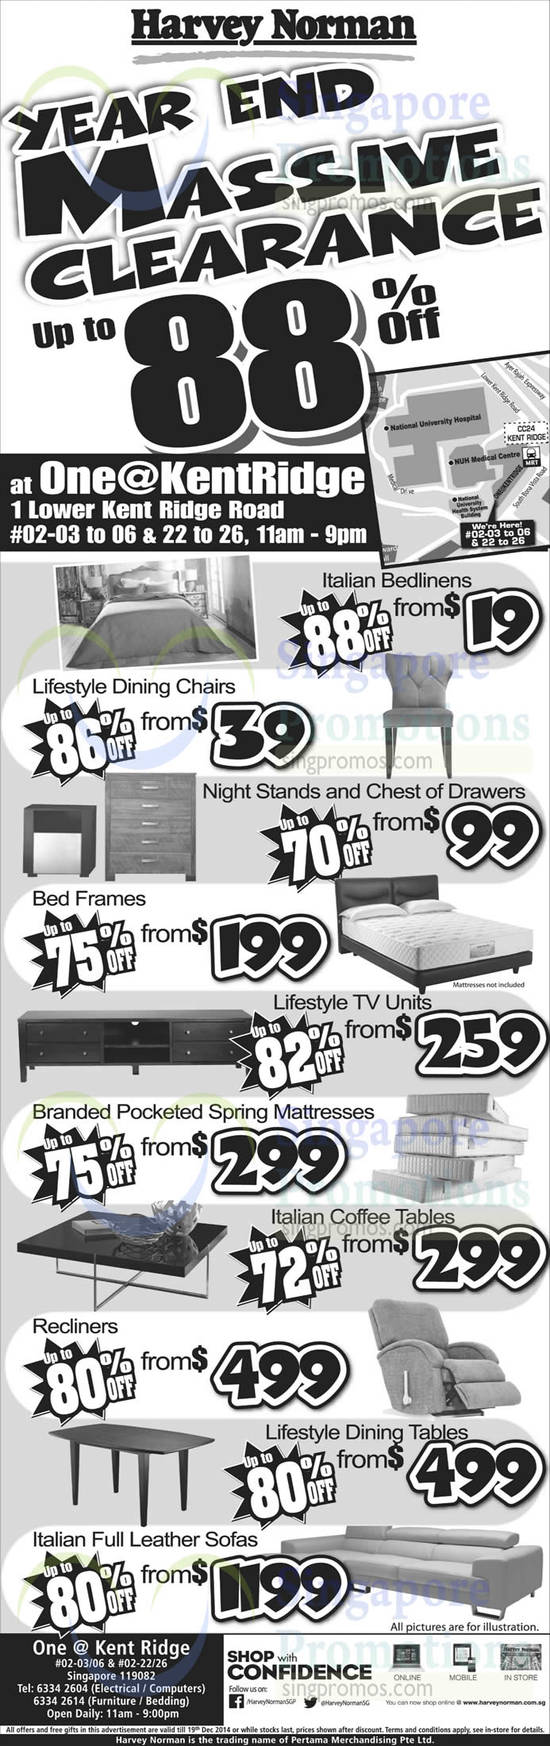 Bedlinens, Lifestyle Dining Chairs, Night Stands, Chest Of Drawers, TVs